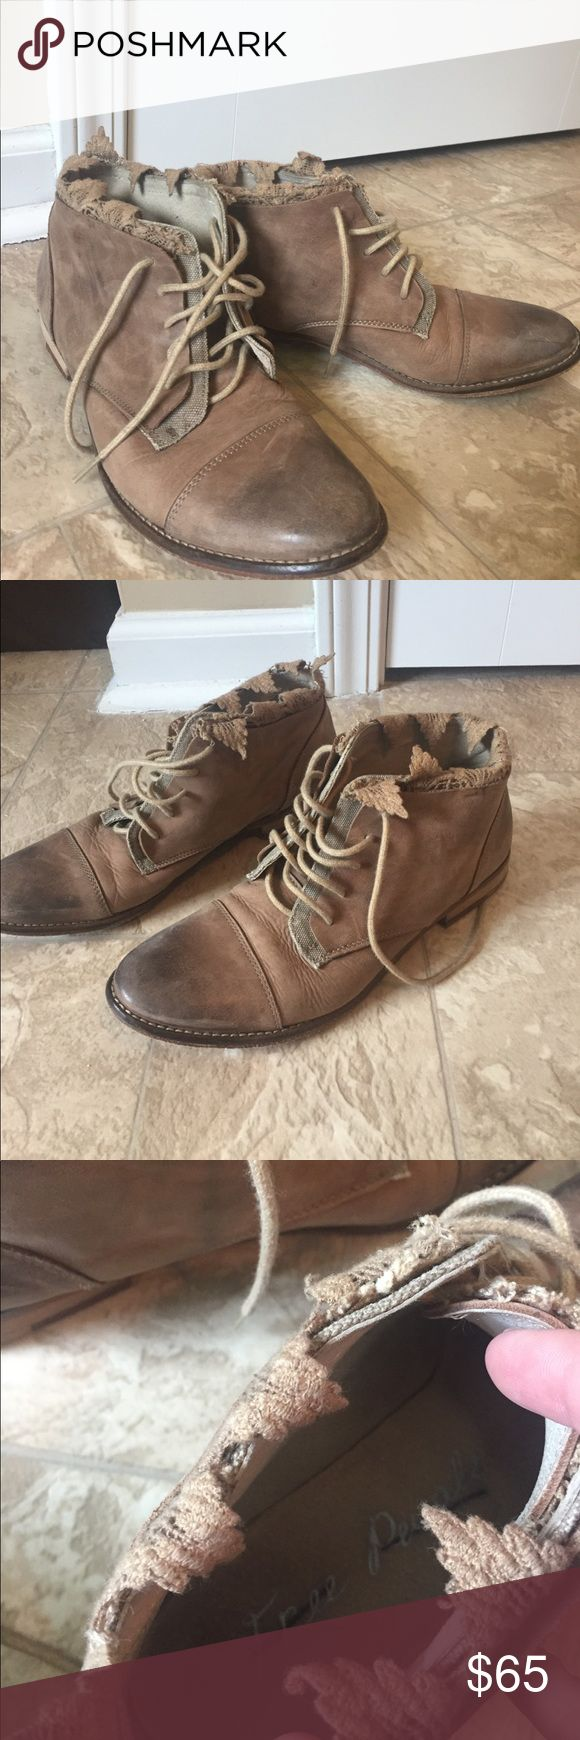 Free People Tan Distressed Lace Ankle Boots EUC, Free People Leather and Lace Ankle Boots Free People Shoes Ankle Boots & Booties